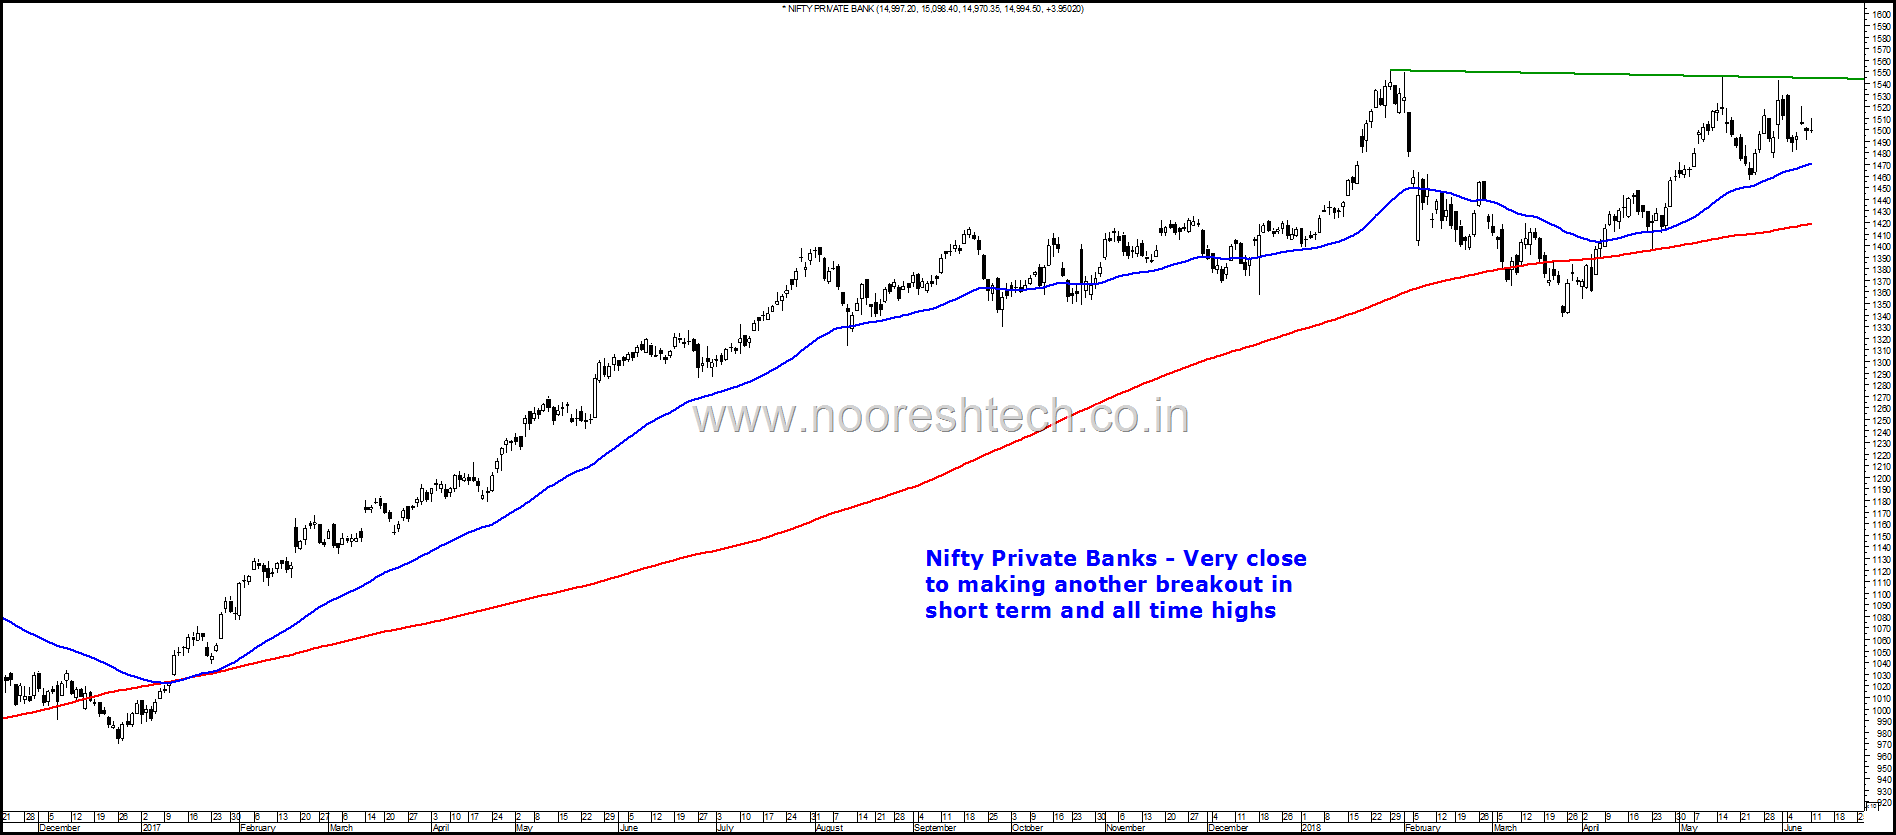 Nifty Private Banks